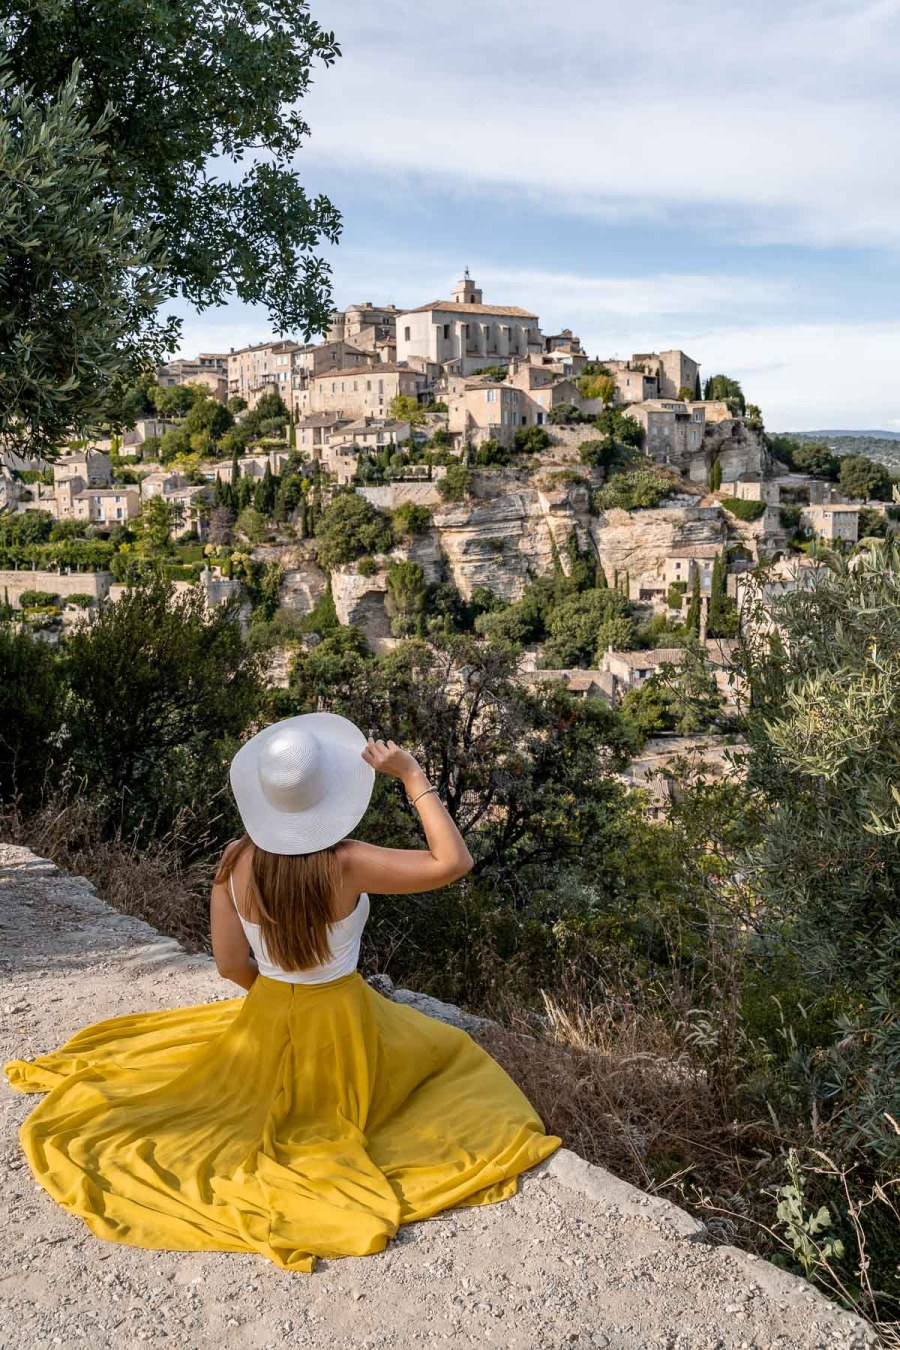 Girl in a yellow skirt sitting at a viewpoint, looking over the beautiful town of Gordes